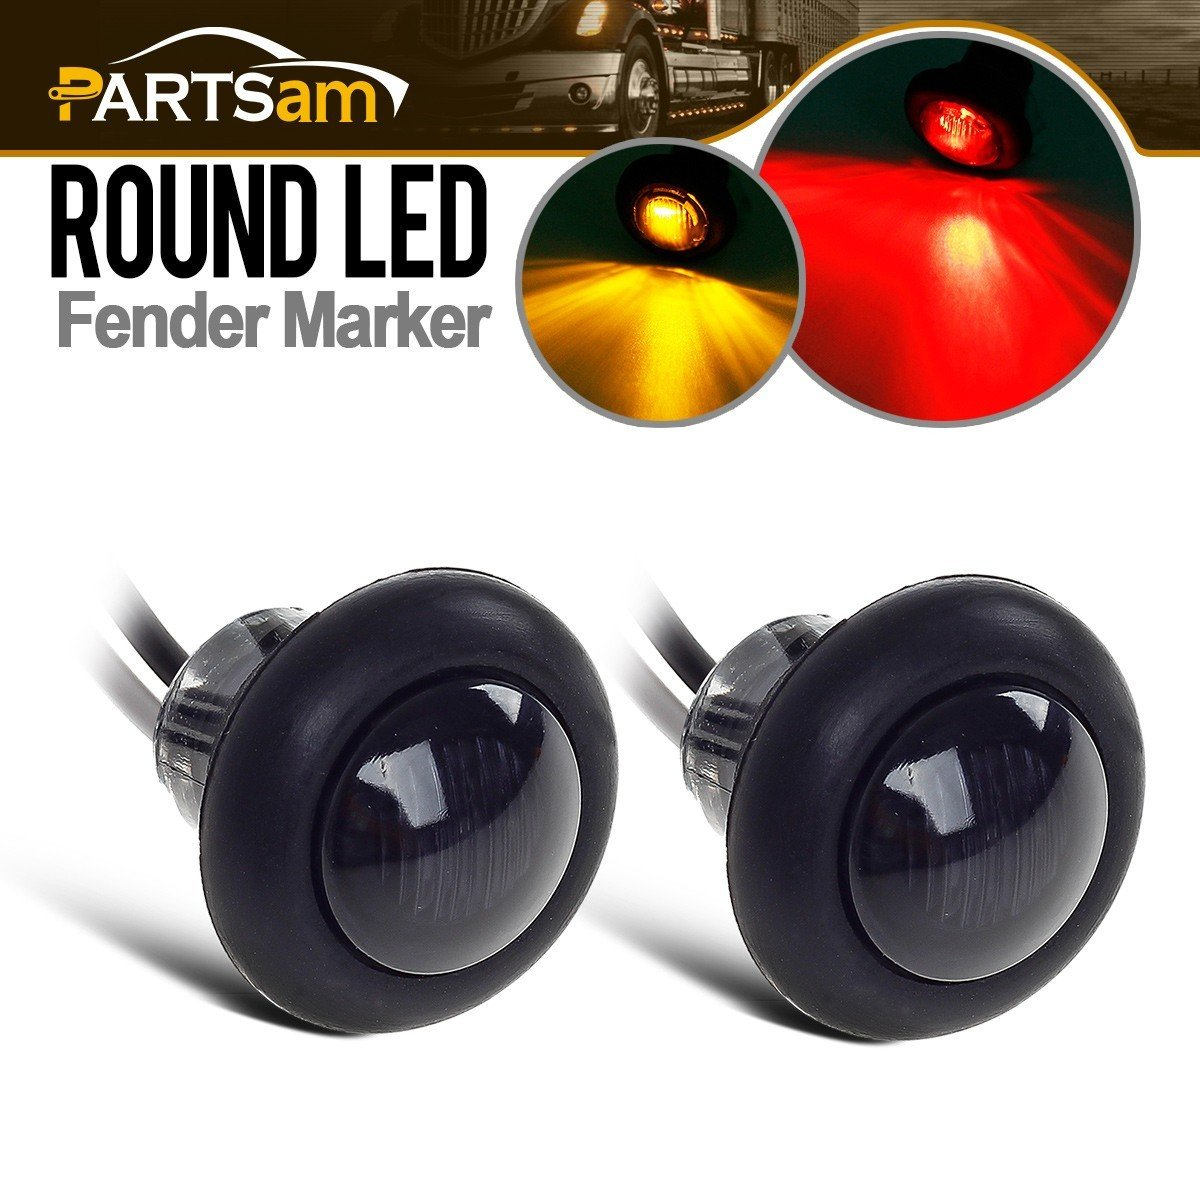 2) 3/4' Smoked Amber LED Clearance Marker Bullet Light/Rubber Grommet 1 LED For Truck Pickups FLush Mount Partsam 4333263493